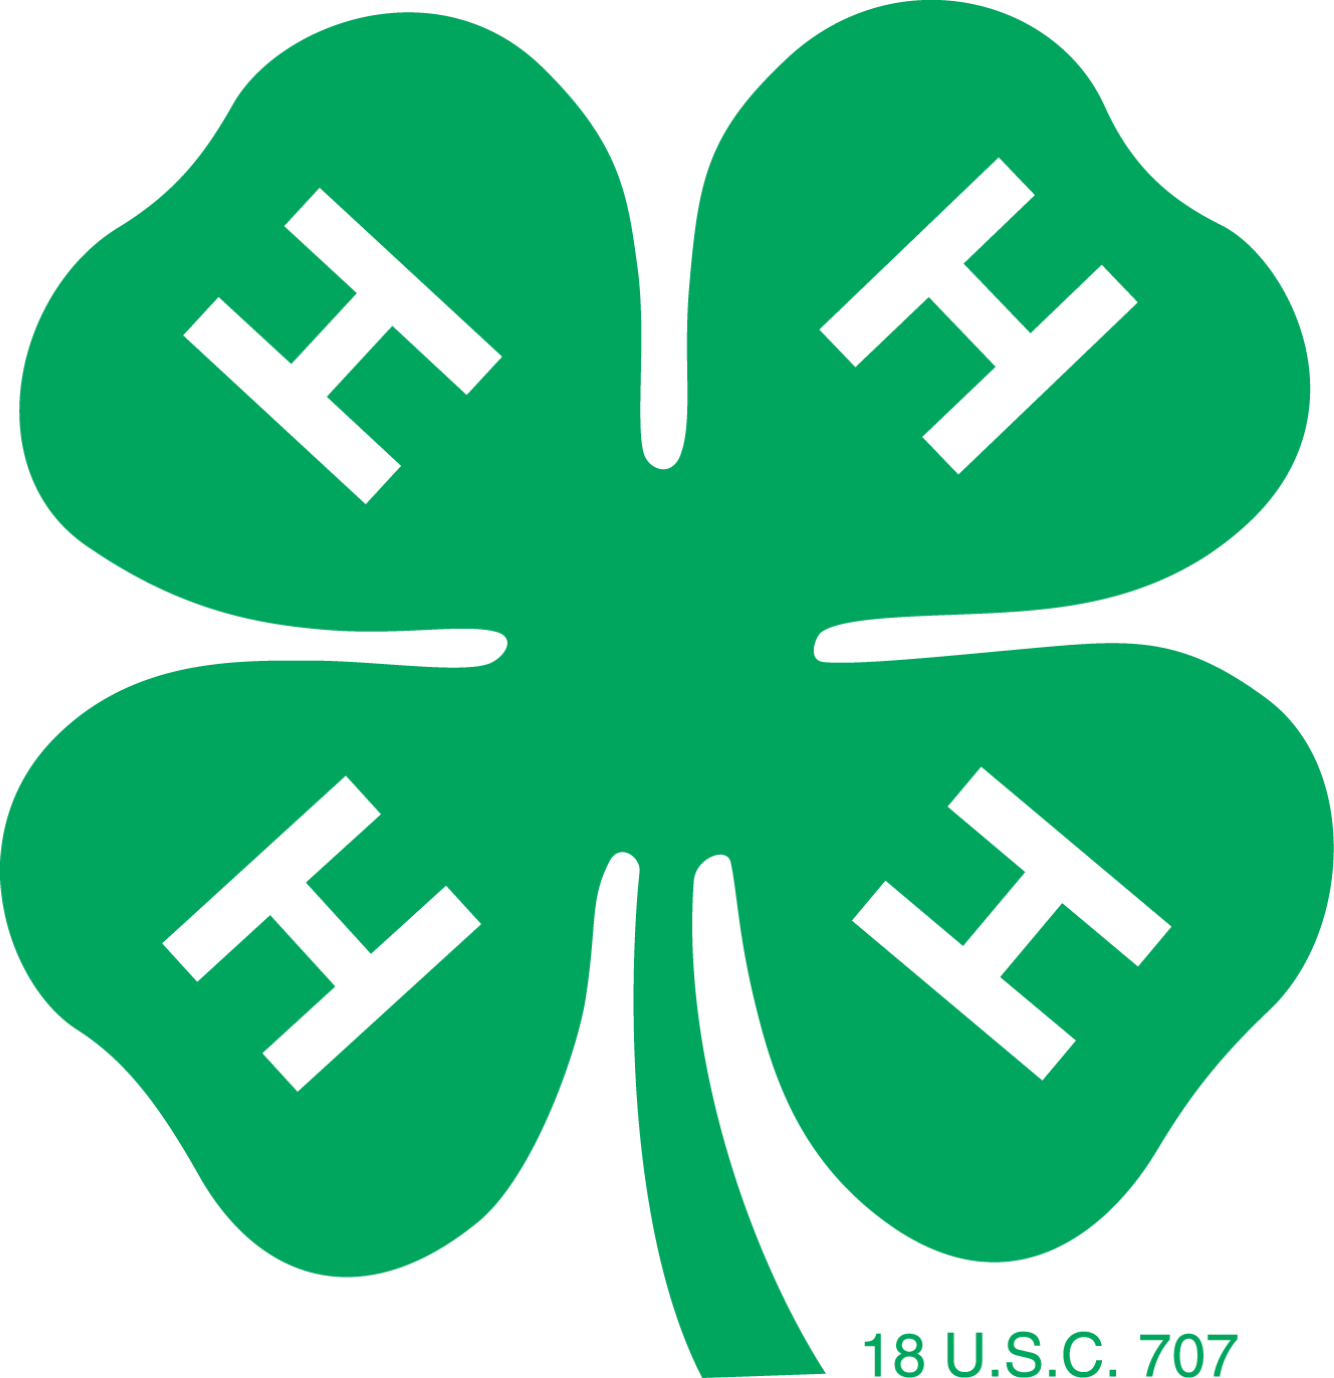 Enroll in 4-H for 2021!